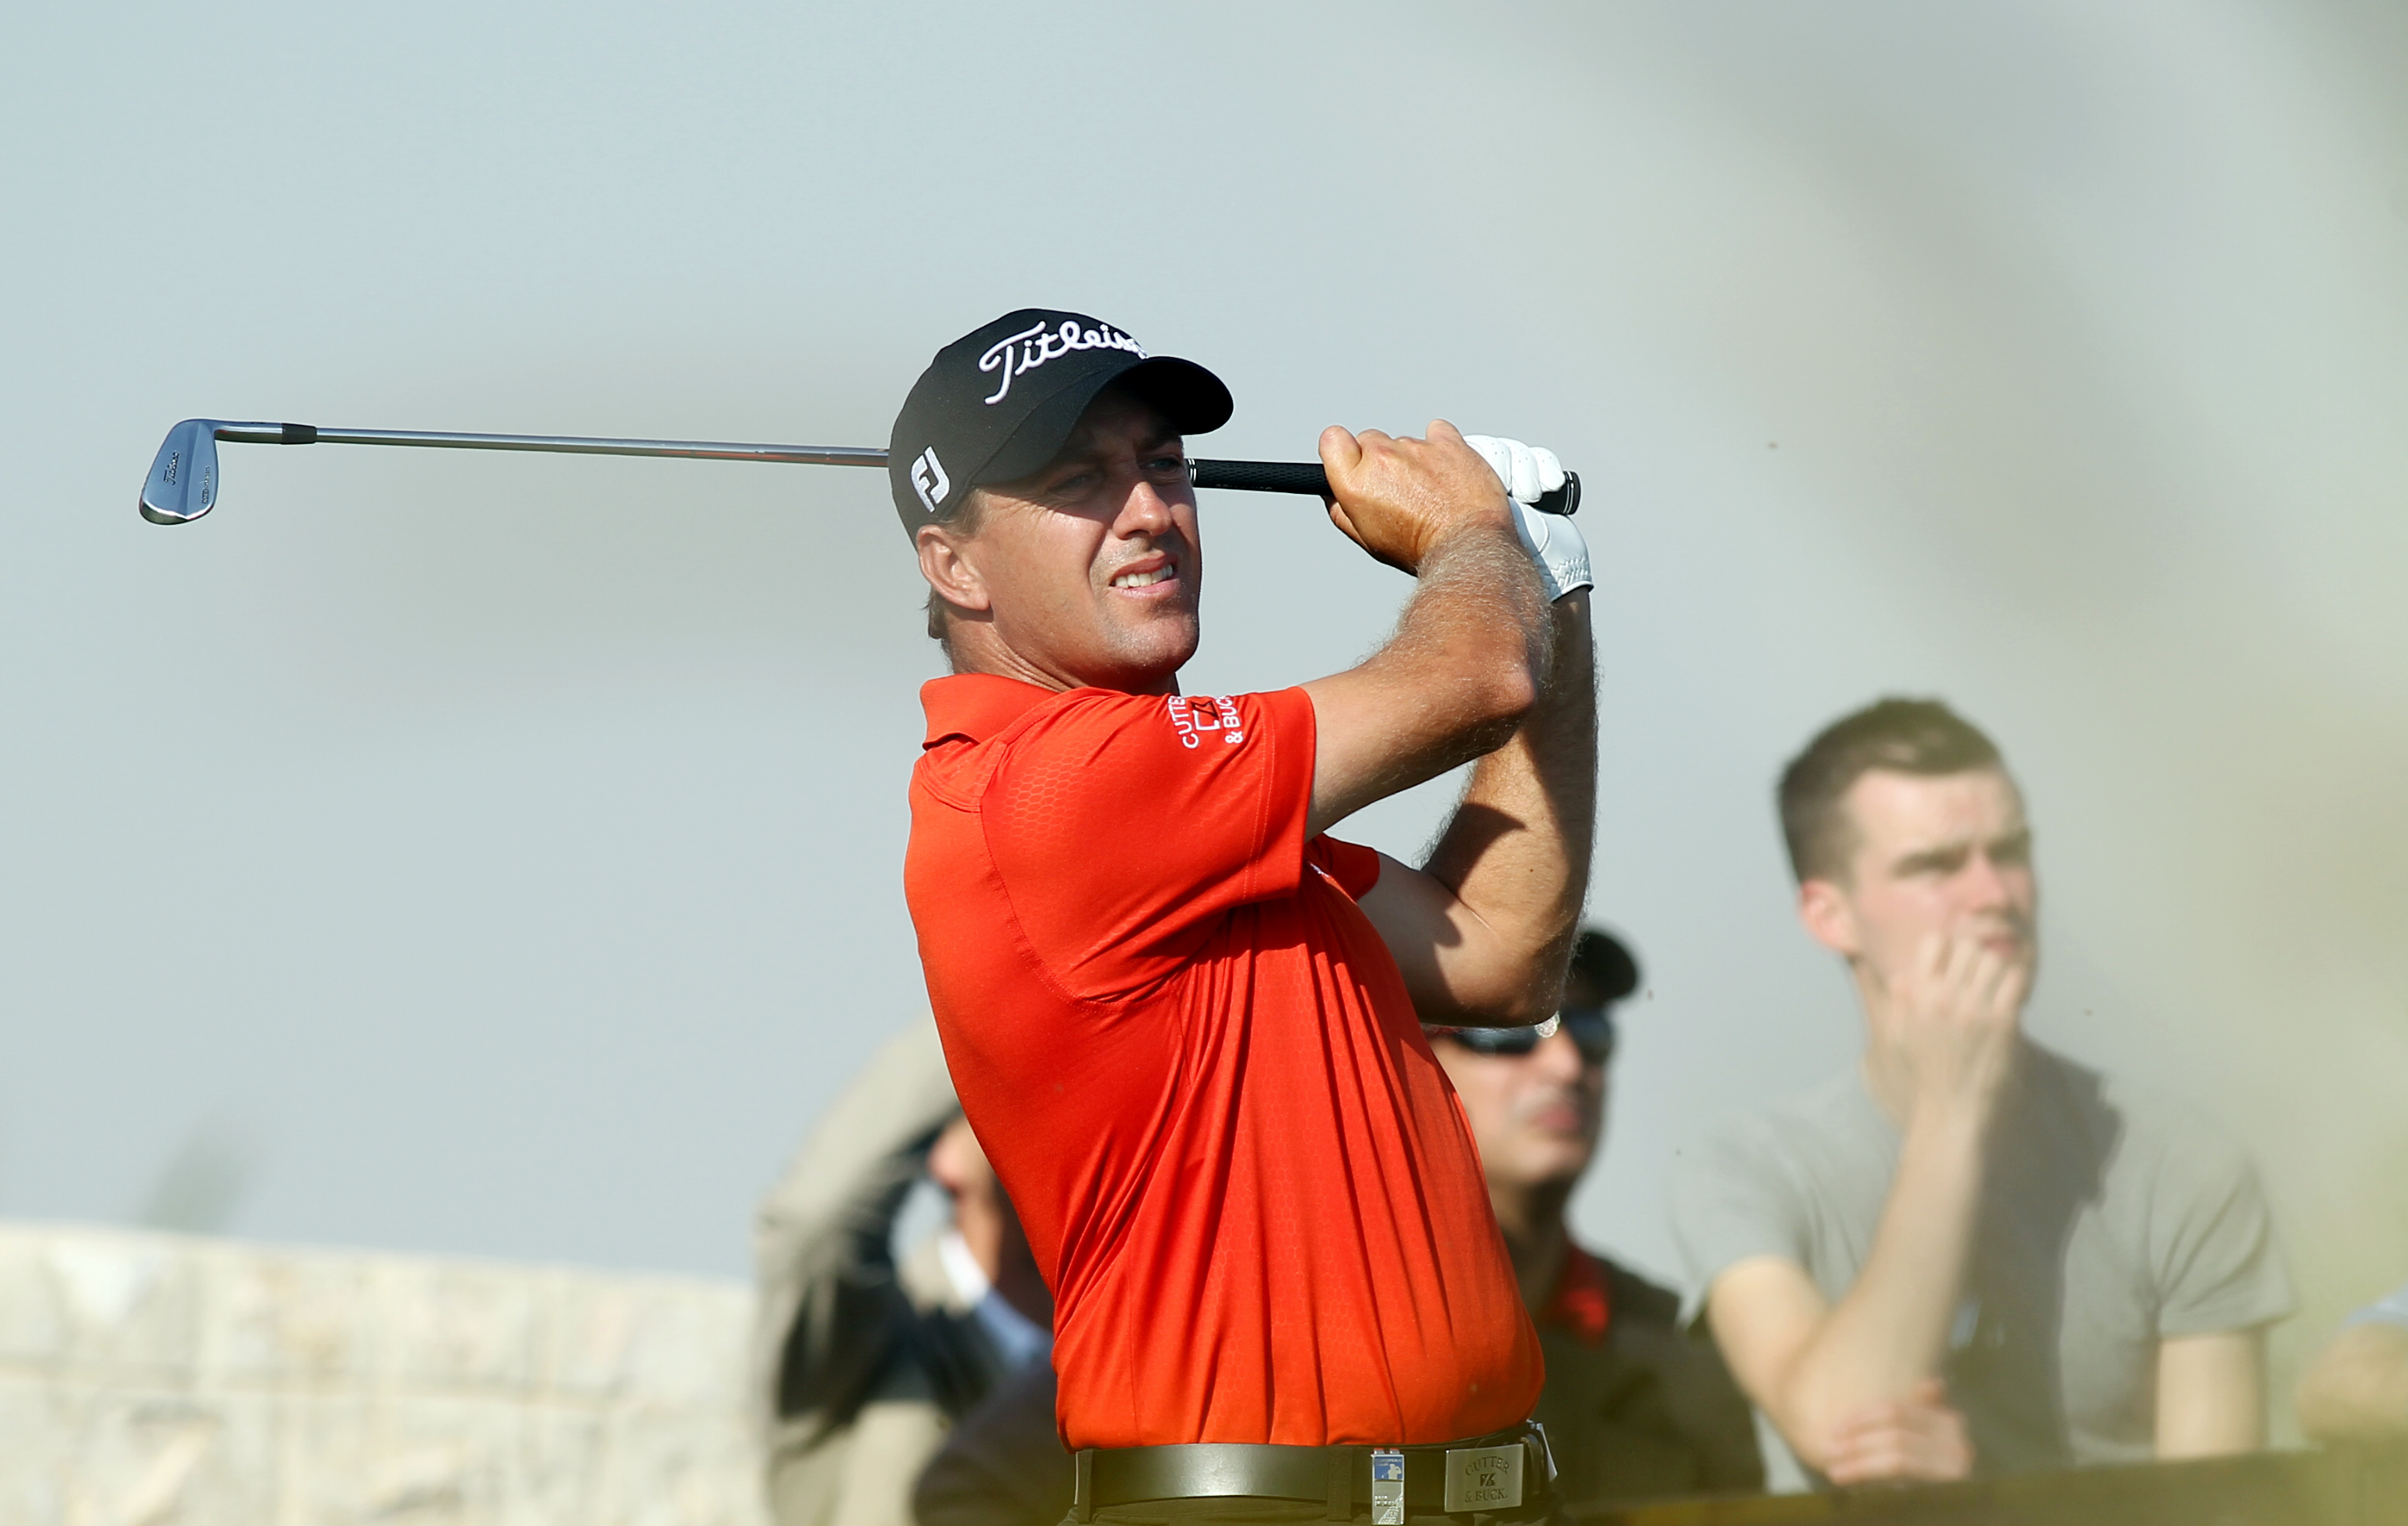 Darren Fichardt of South Africa  hits his tee shot on the ninth hole during the second round of the Commercial Bank Qatar Masters at the Doha Golf Club in Doha, Qatar, Thursday, Jan. 23, 2014. (AP Photo/Osama Faisal)